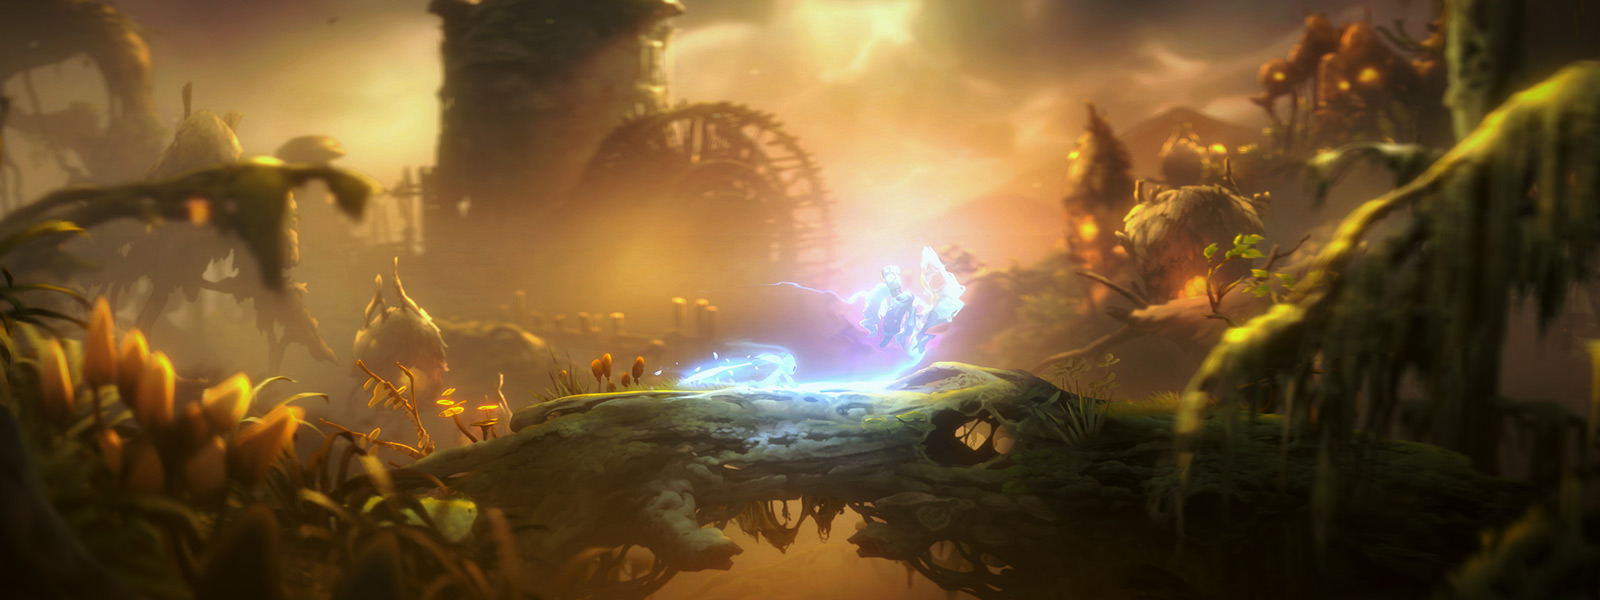 Ori uses a spirit weapon